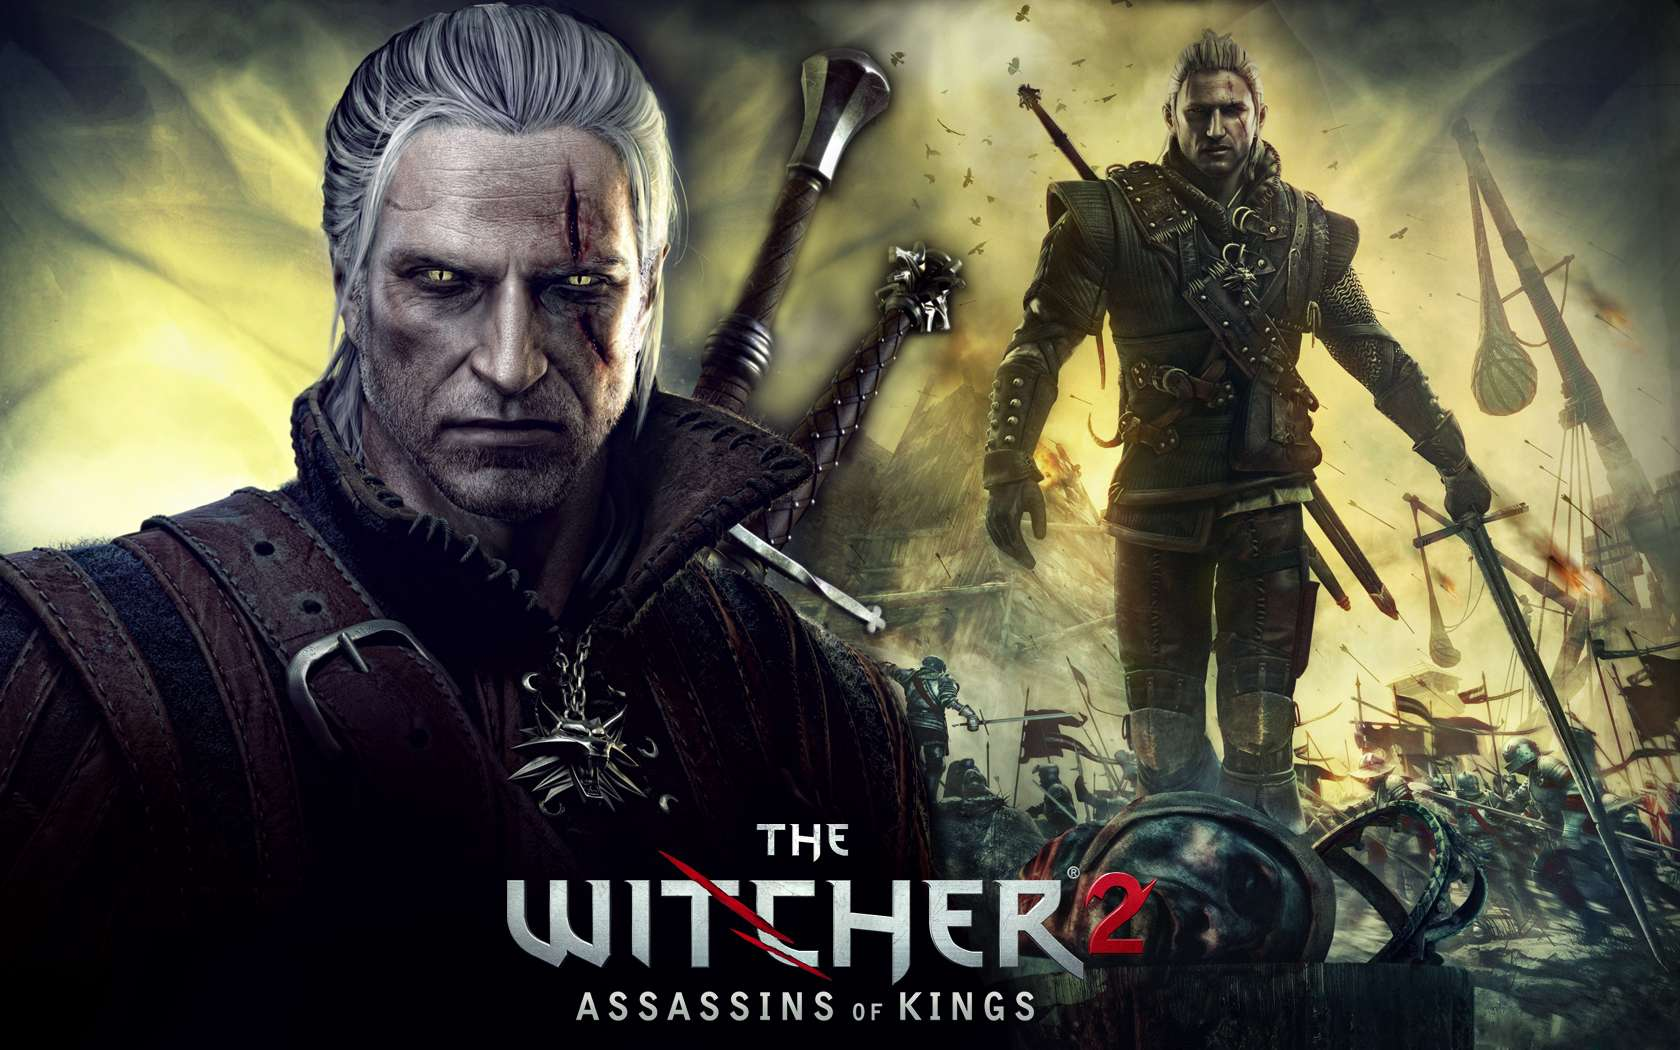 The Witcher 2: Assassins of King ЕЕ Steam gift ROW Free